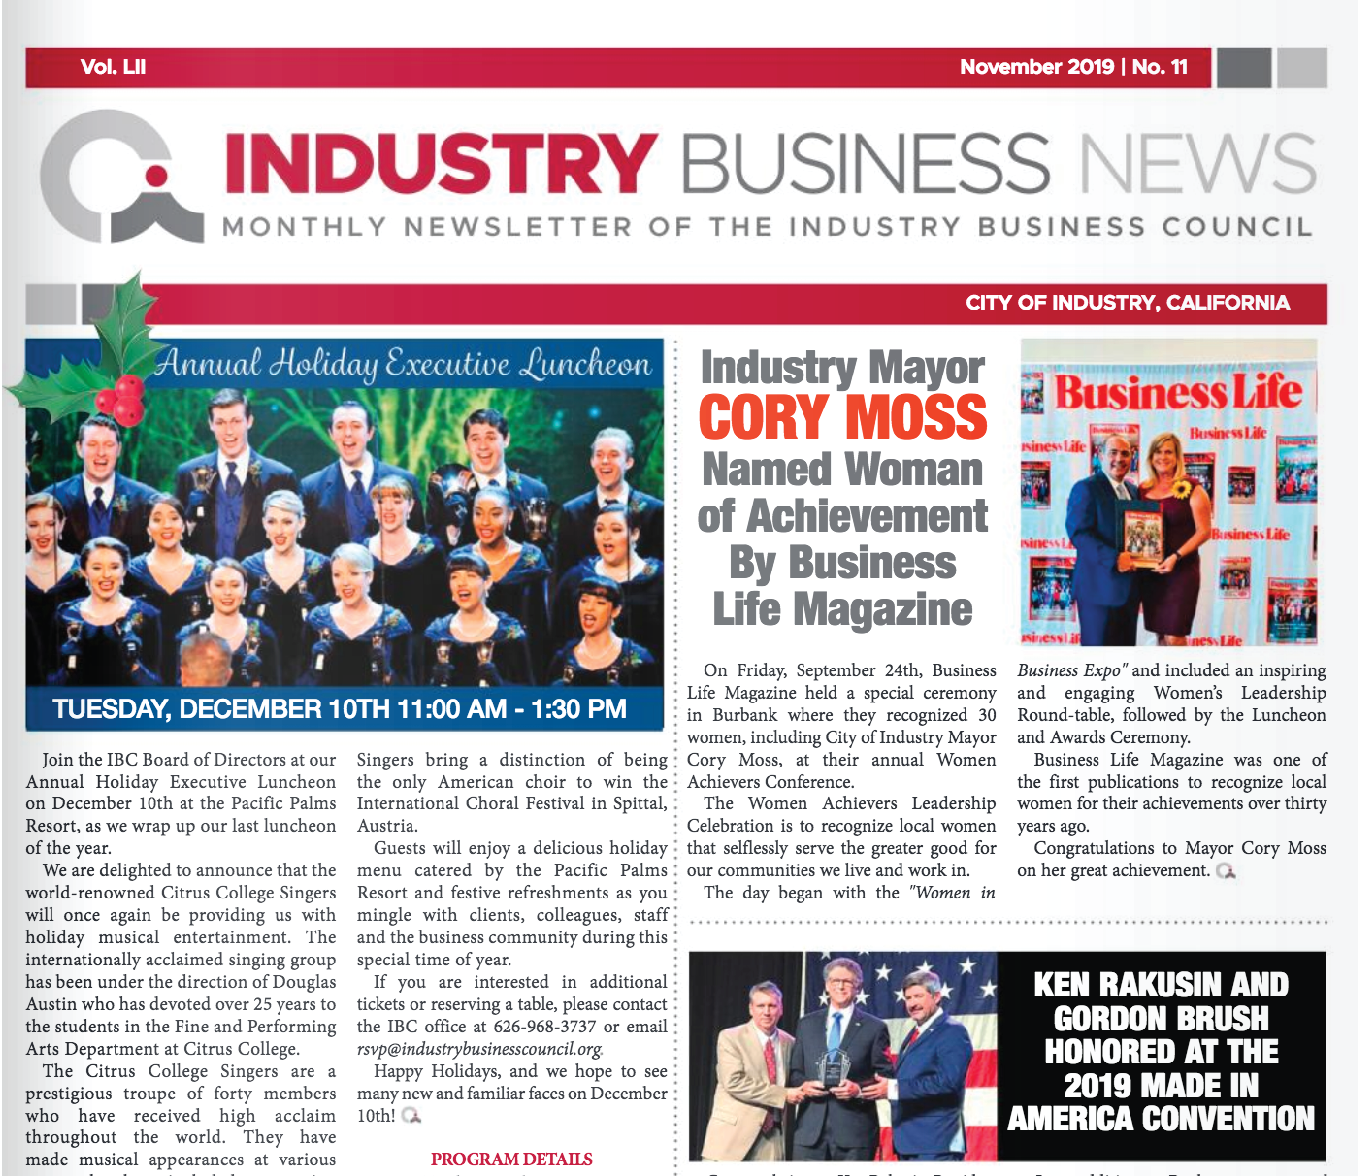 NEWSLETTER | 2019 November Industry Business News